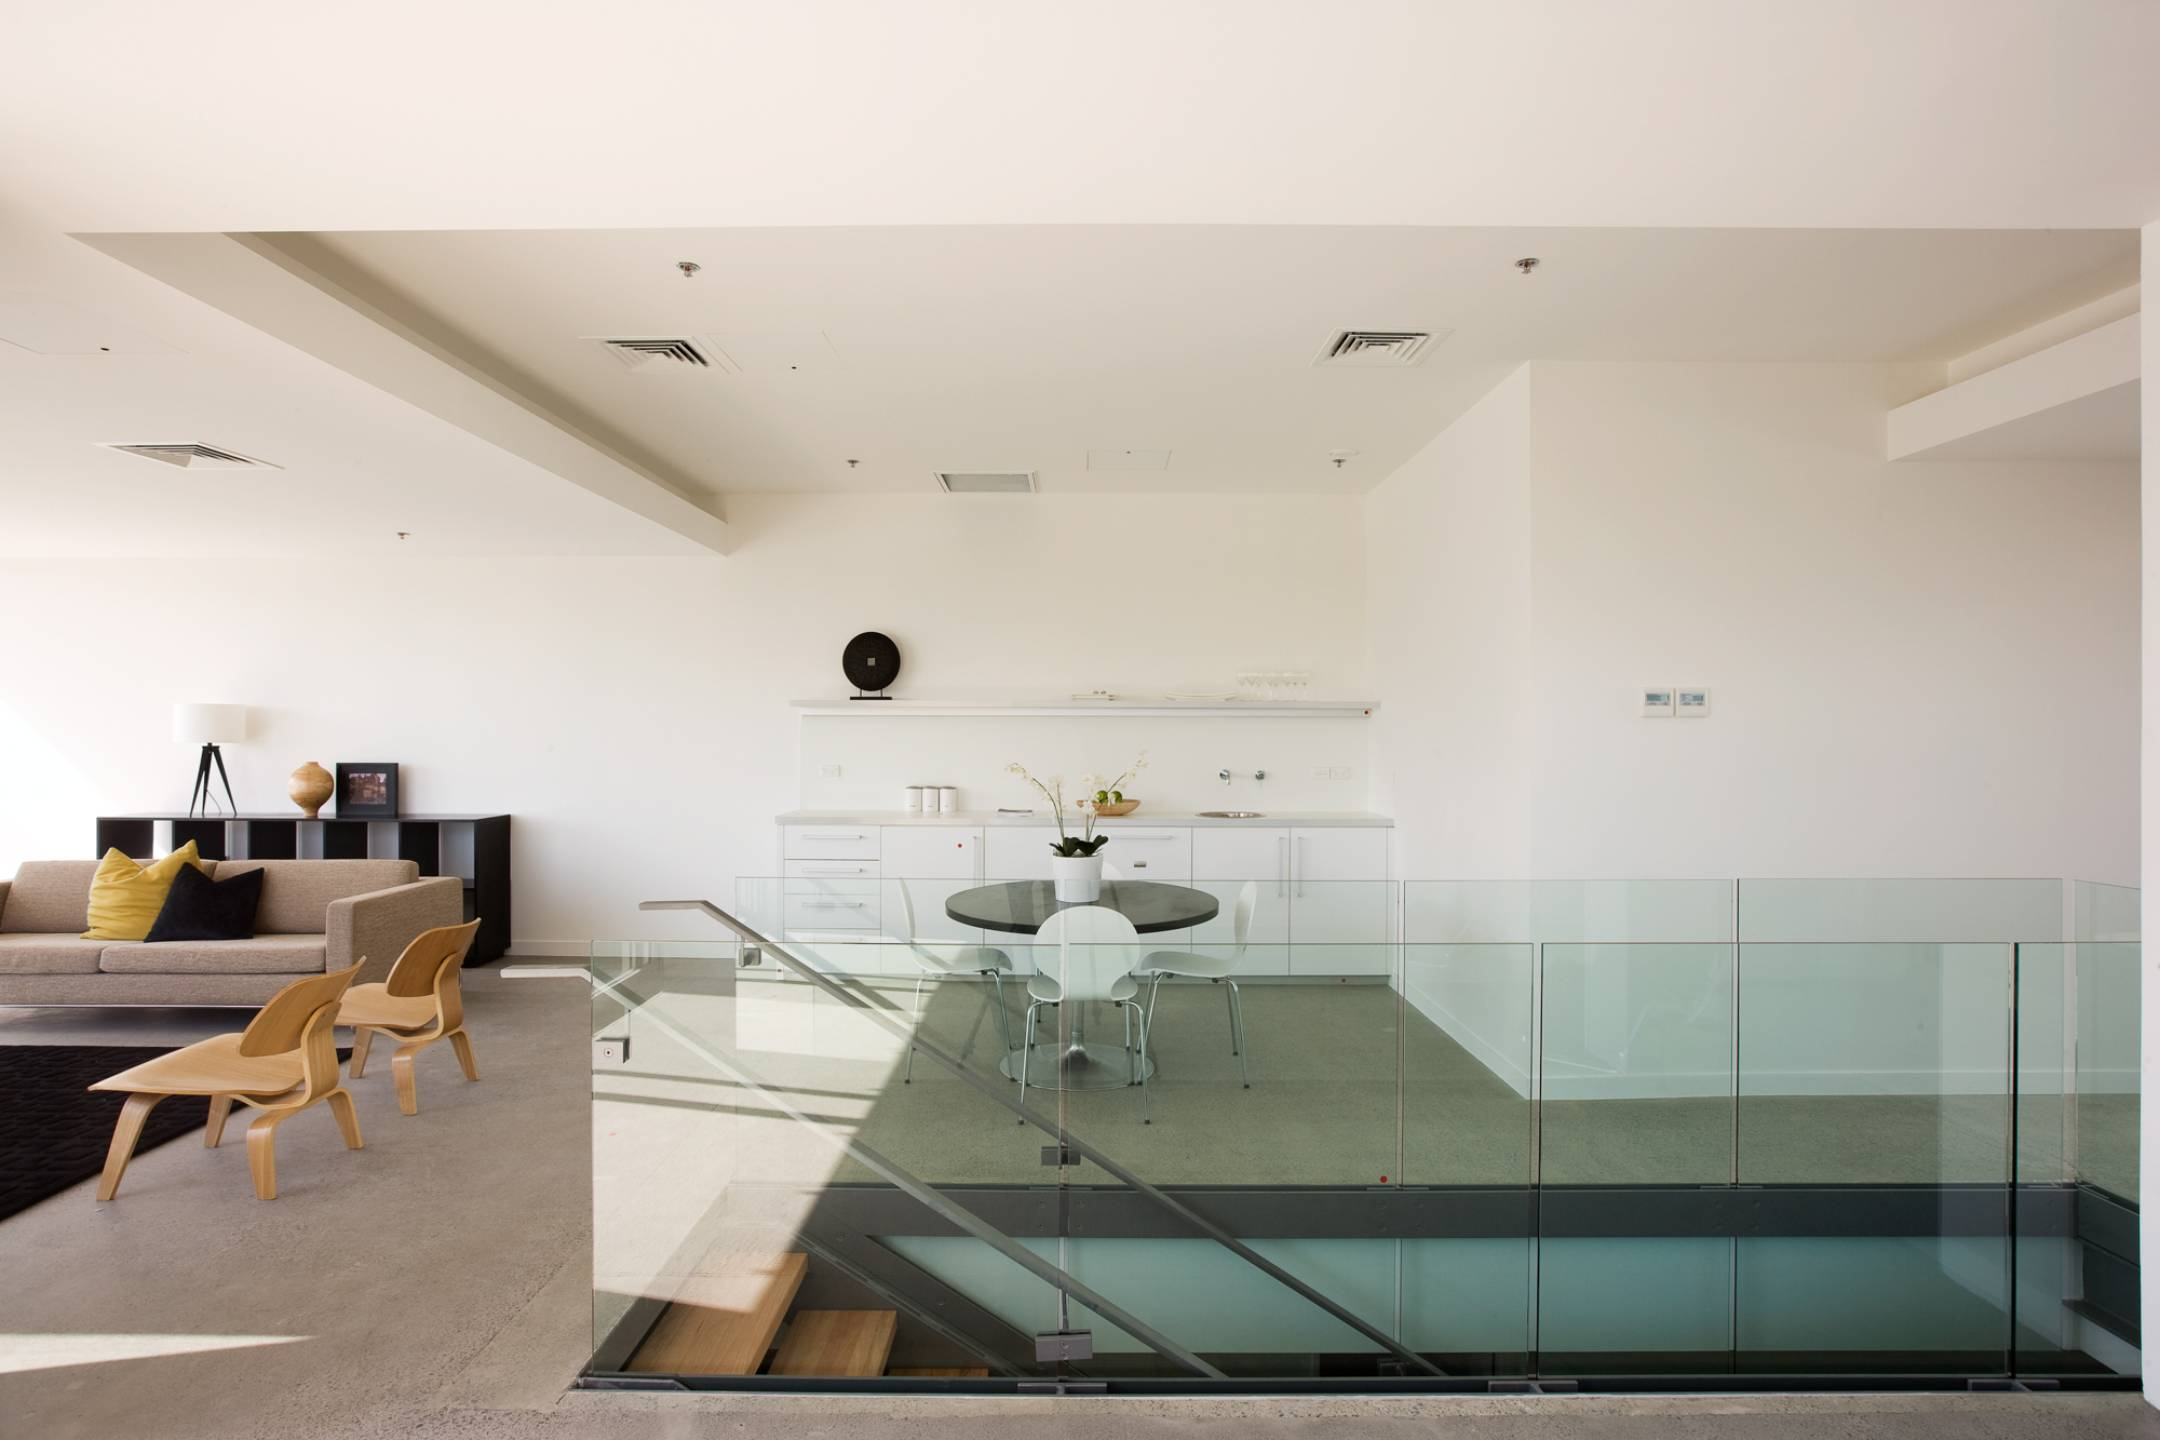 Via Centro by Herbst Maxcey Metropolitan Architects